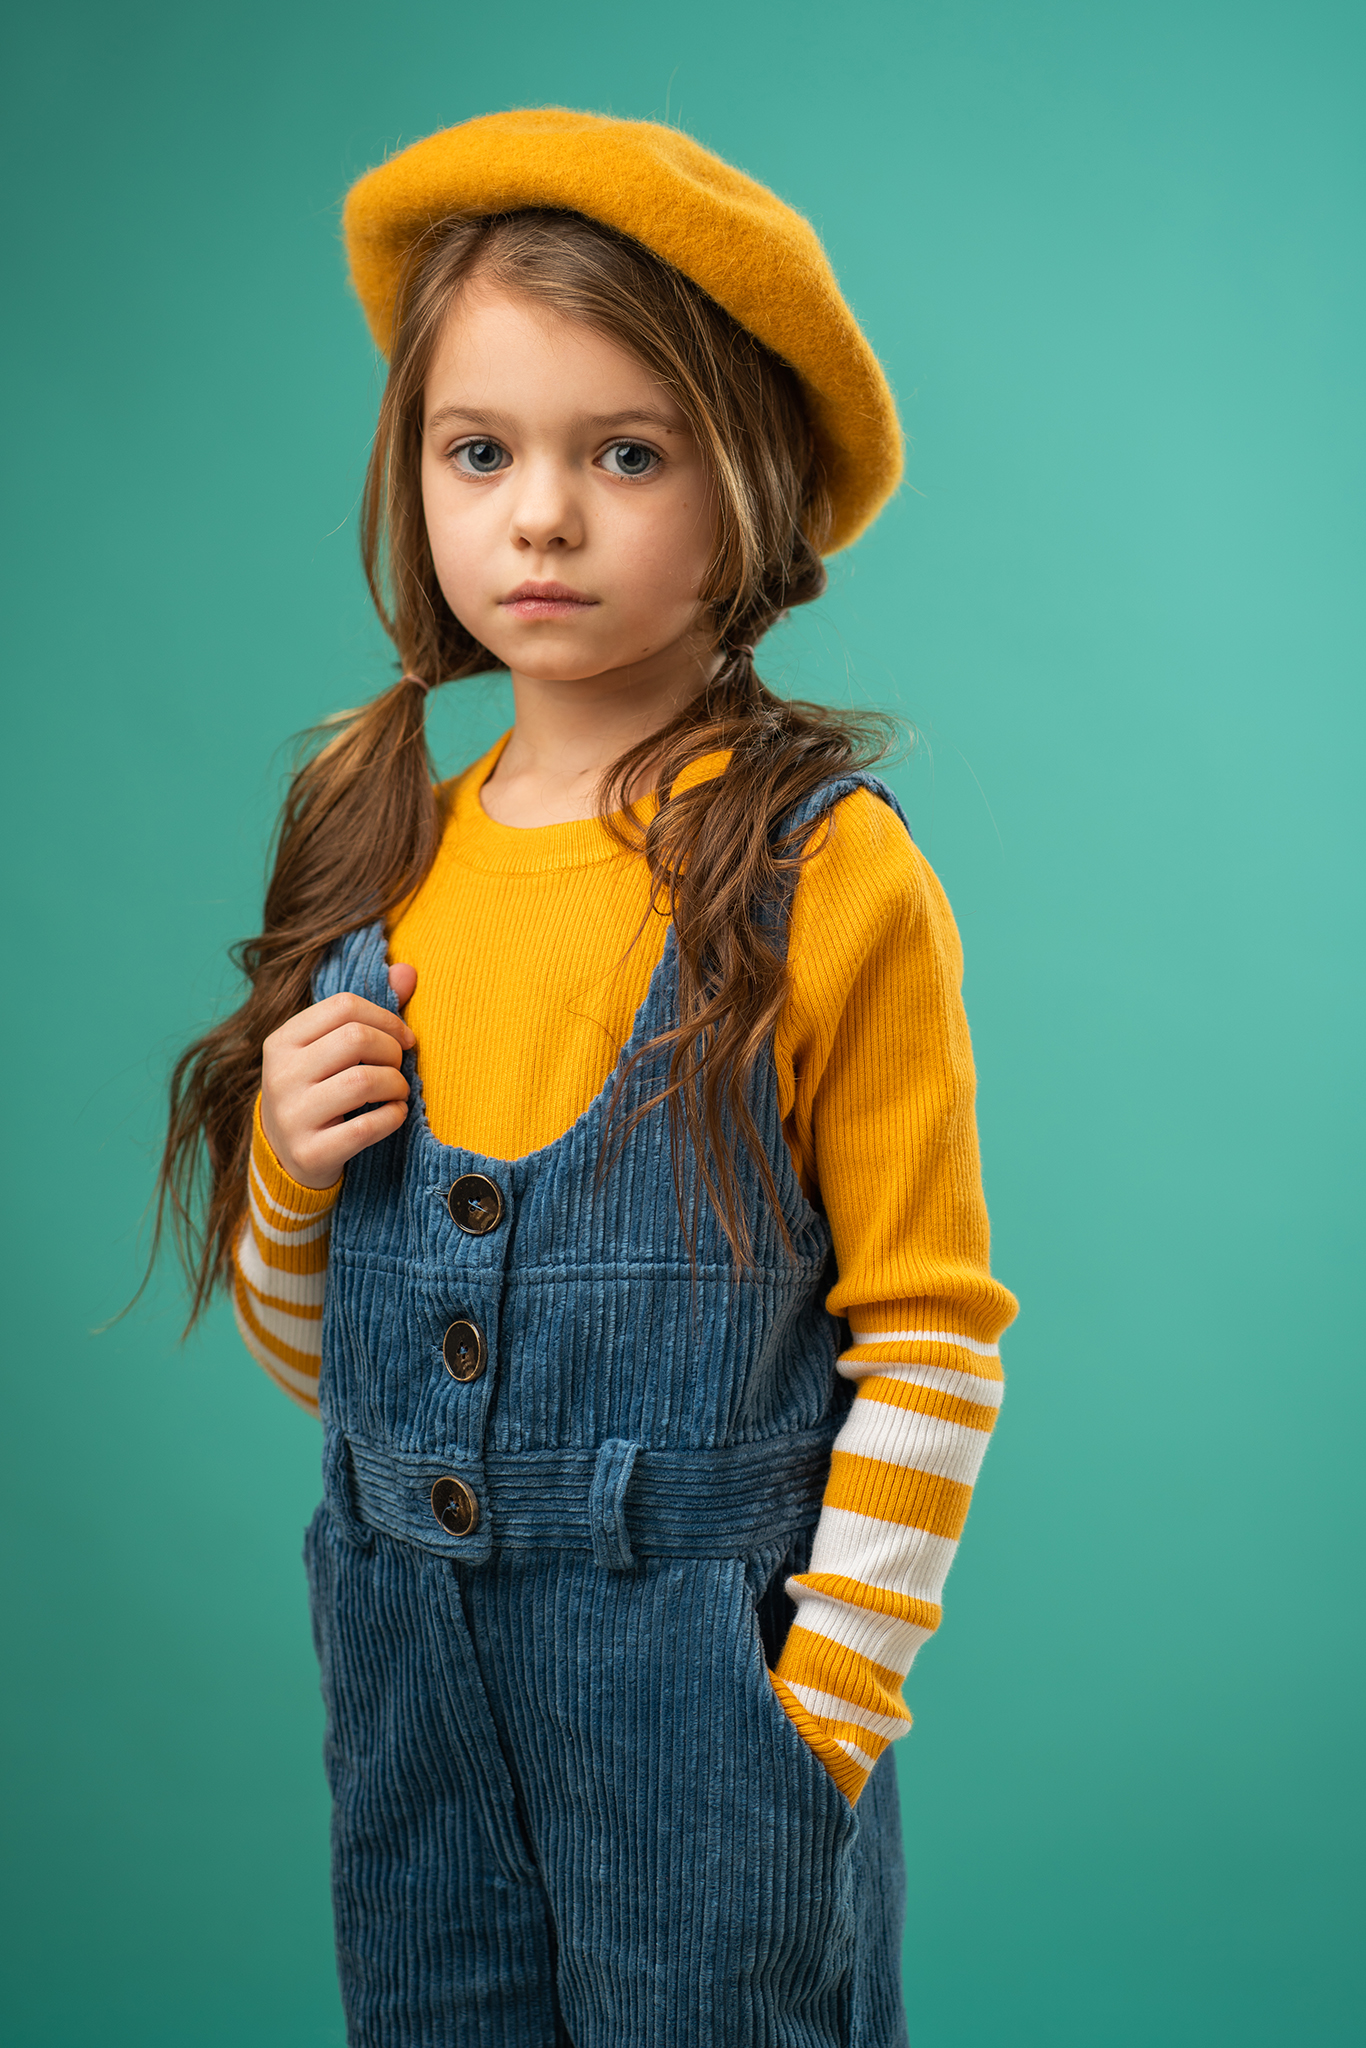 child model portfolio studio photograph by Portrait photographer Preston